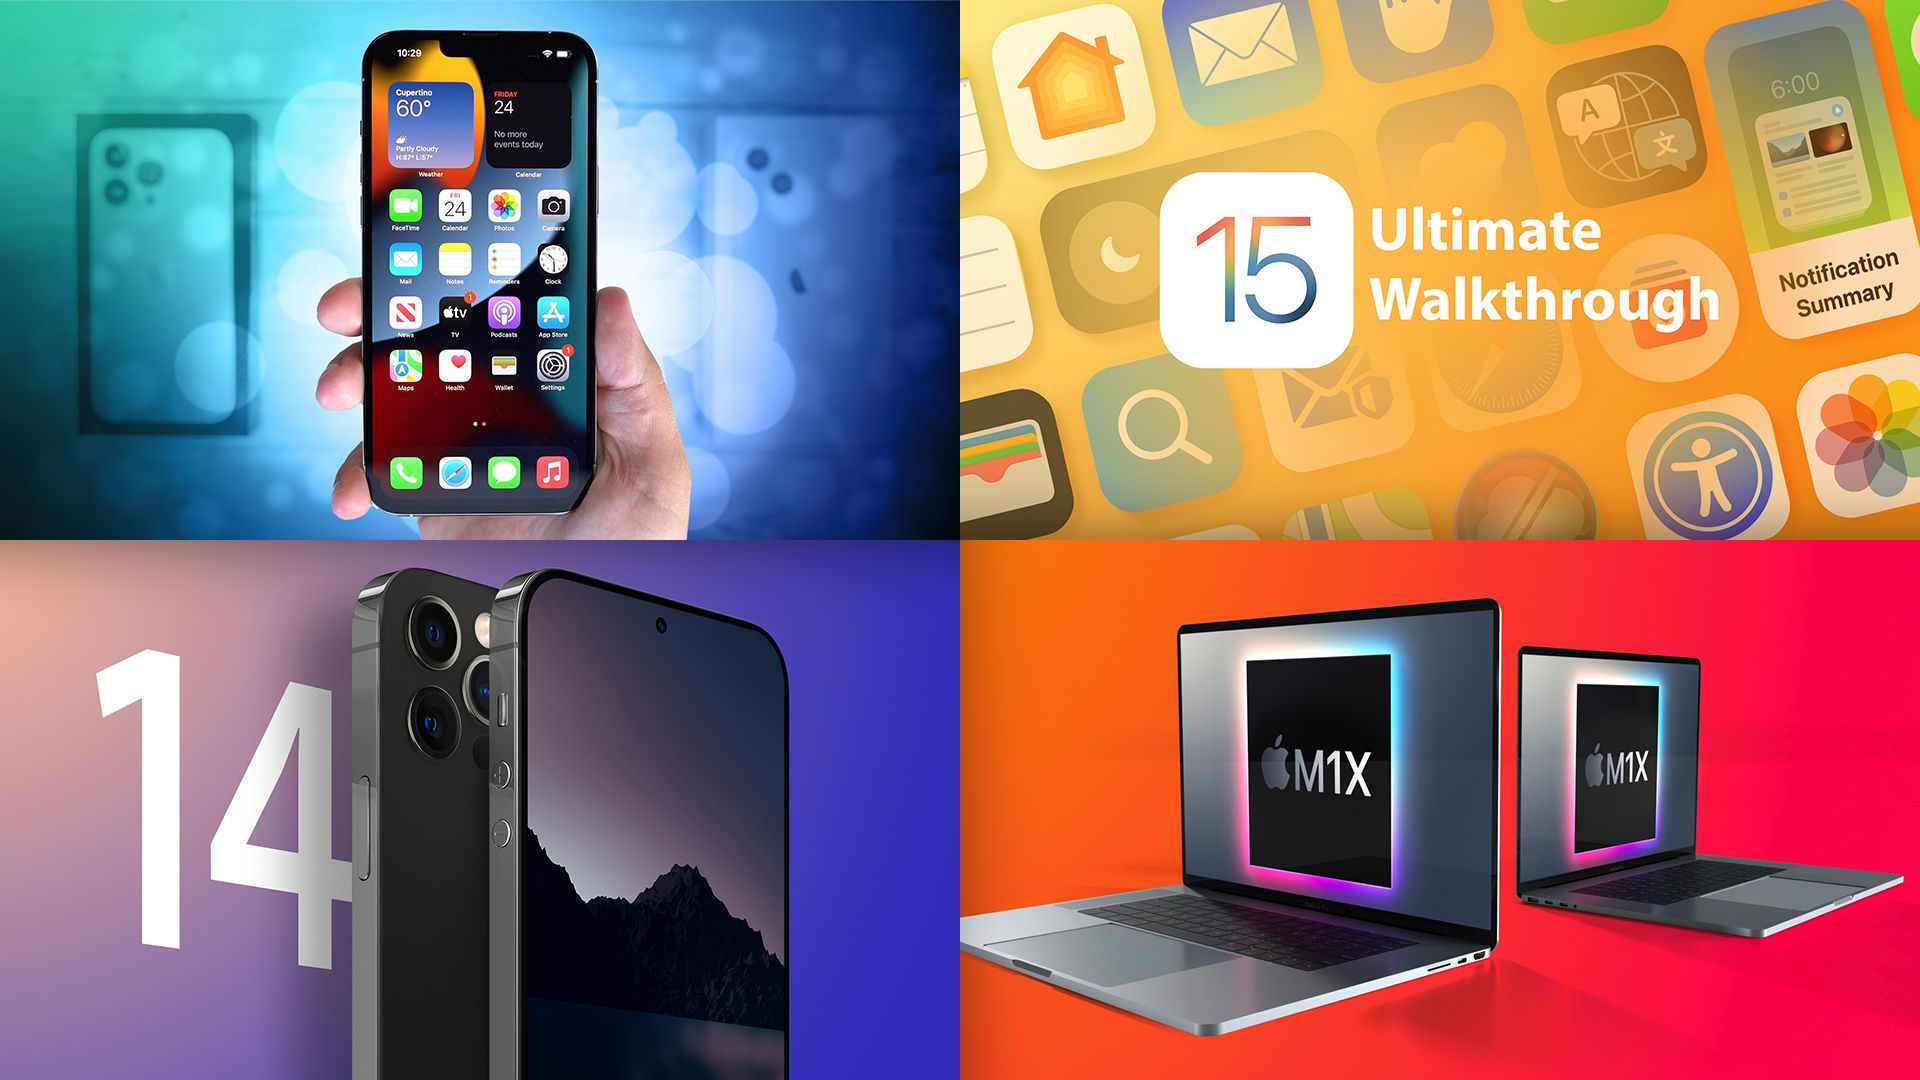 Top Stories: iPhone 13 Launch, iOS 15 Features, iPhone 14 Pro Rumors, and More